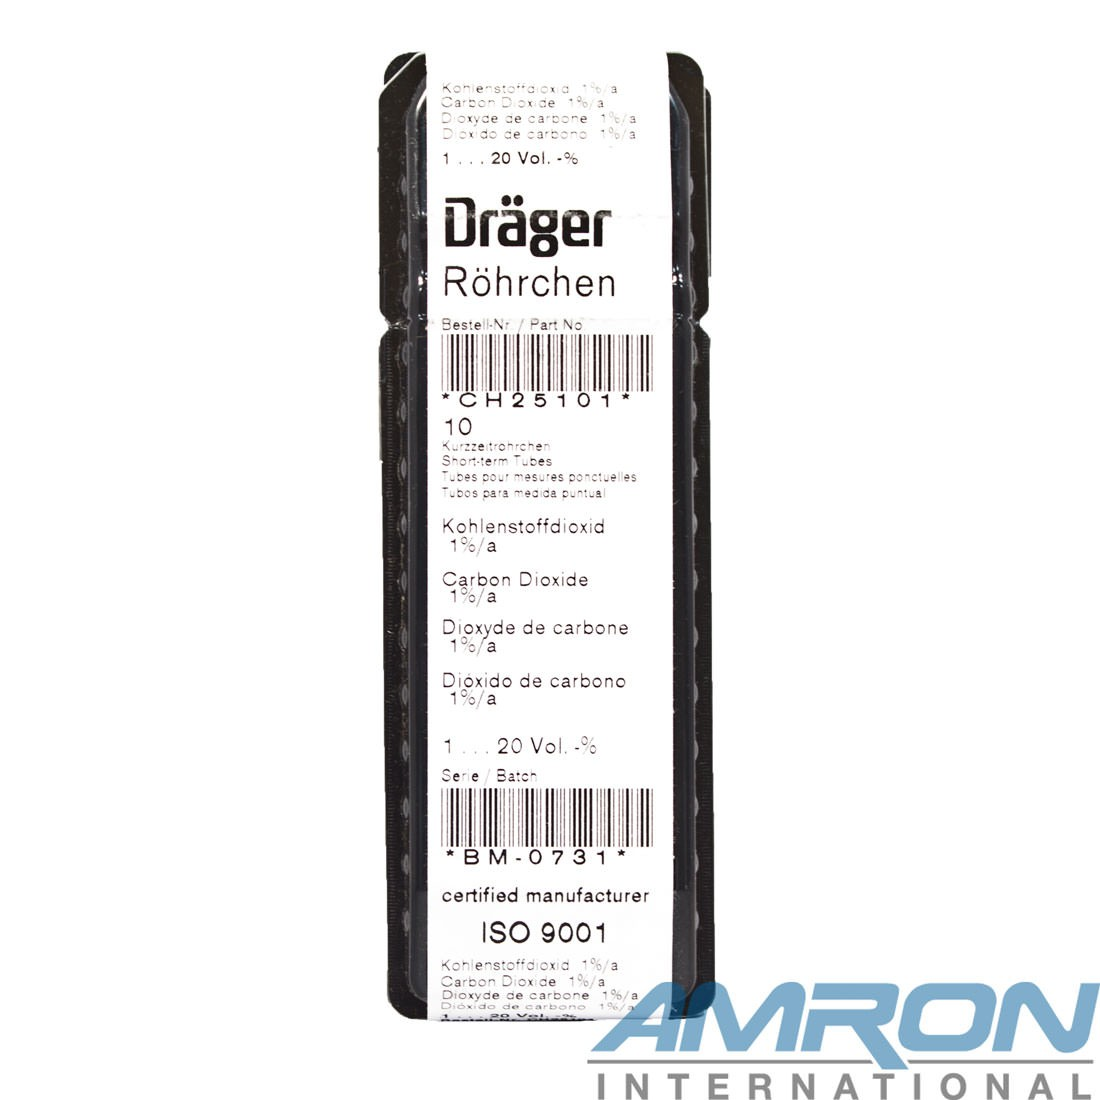 Drager Tube Carbon Dioxide 1%/a